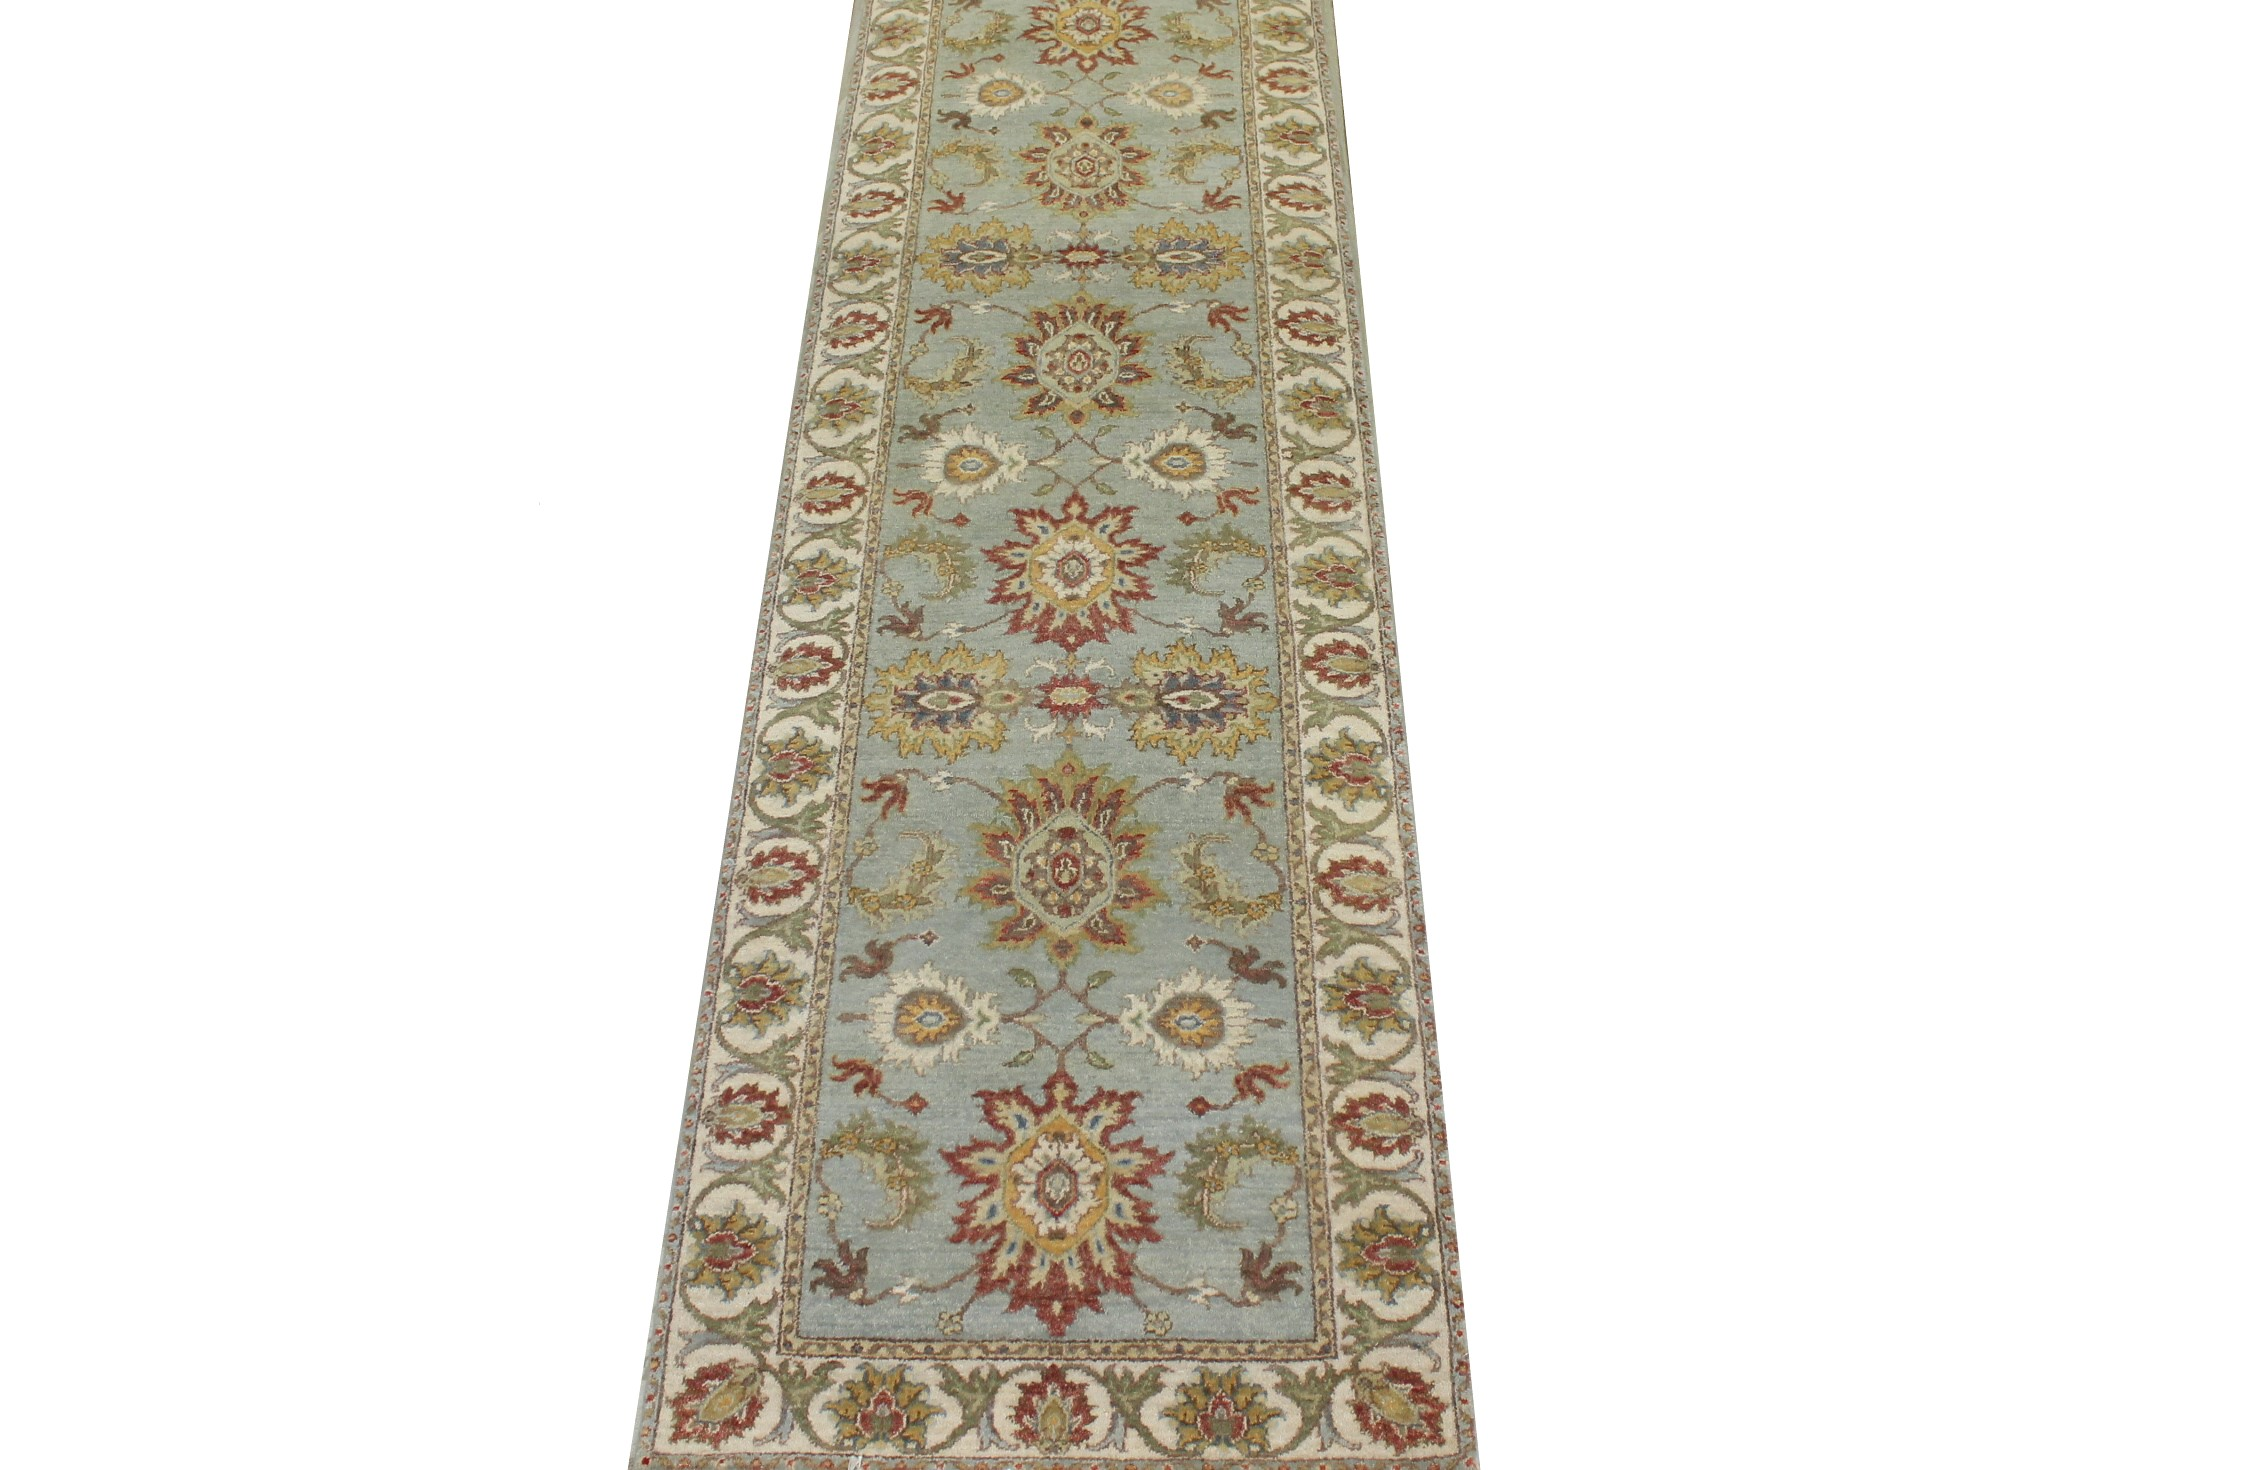 12 ft. Runner Traditional Hand Knotted Wool Area Rug - MR023542